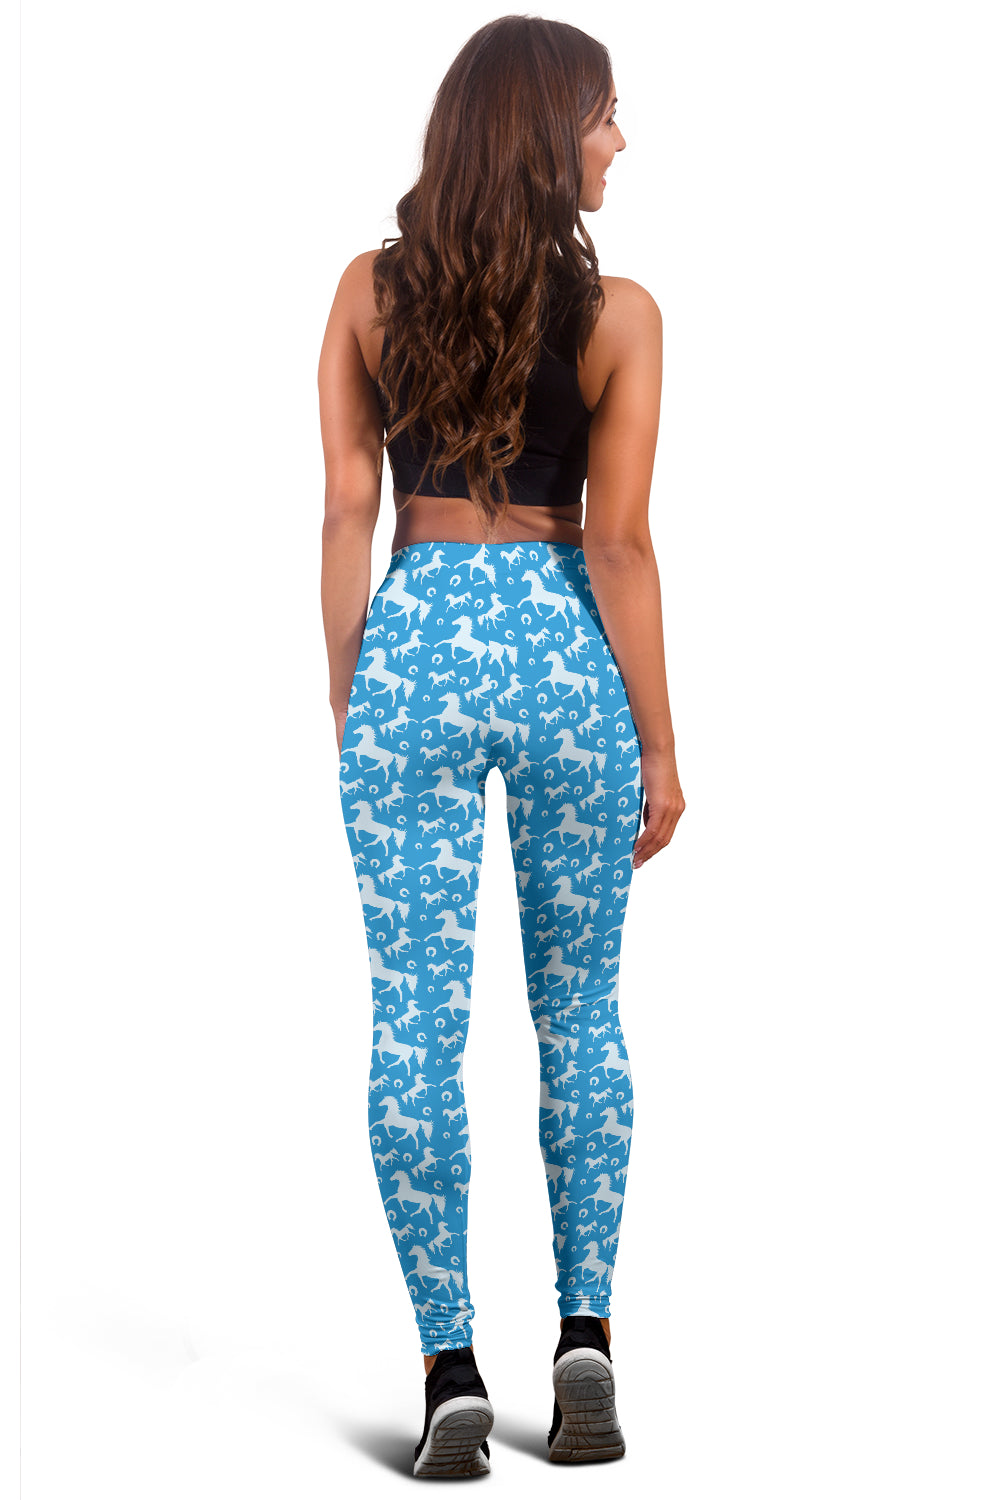 Blue Horse Leggings - Hello Moa